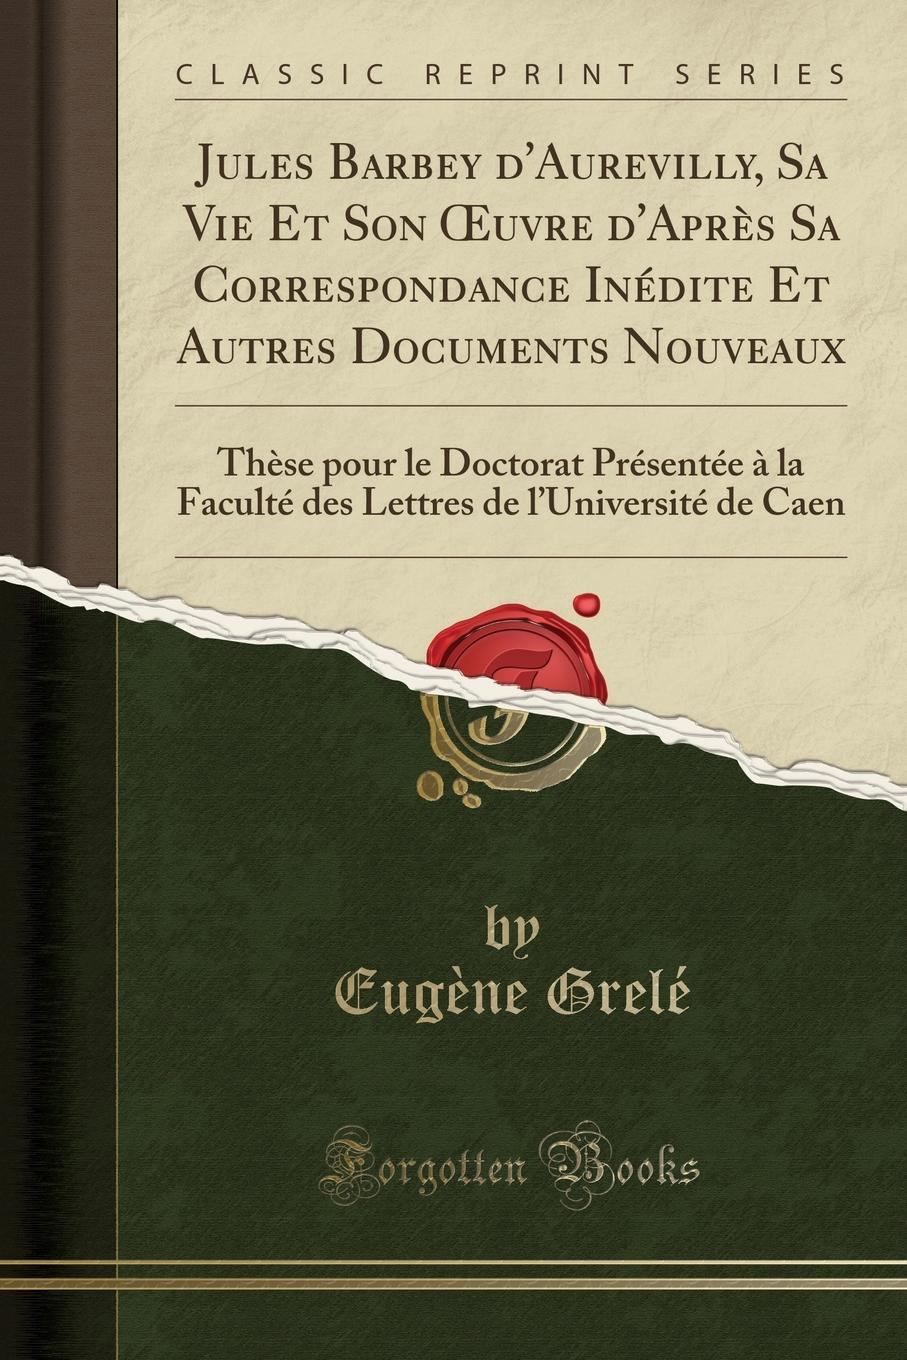 Eugène Grelé Jules Barbey d.Aurevilly, Sa Vie Et Son OEuvre d.Apres Sa Correspondance Inedite Et Autres Documents Nouveaux. These pour le Doctorat Presentee a la Faculte des Lettres de l.Universite de Caen (Classic Reprint) barbey d aurevilly jules le chevalier des touches